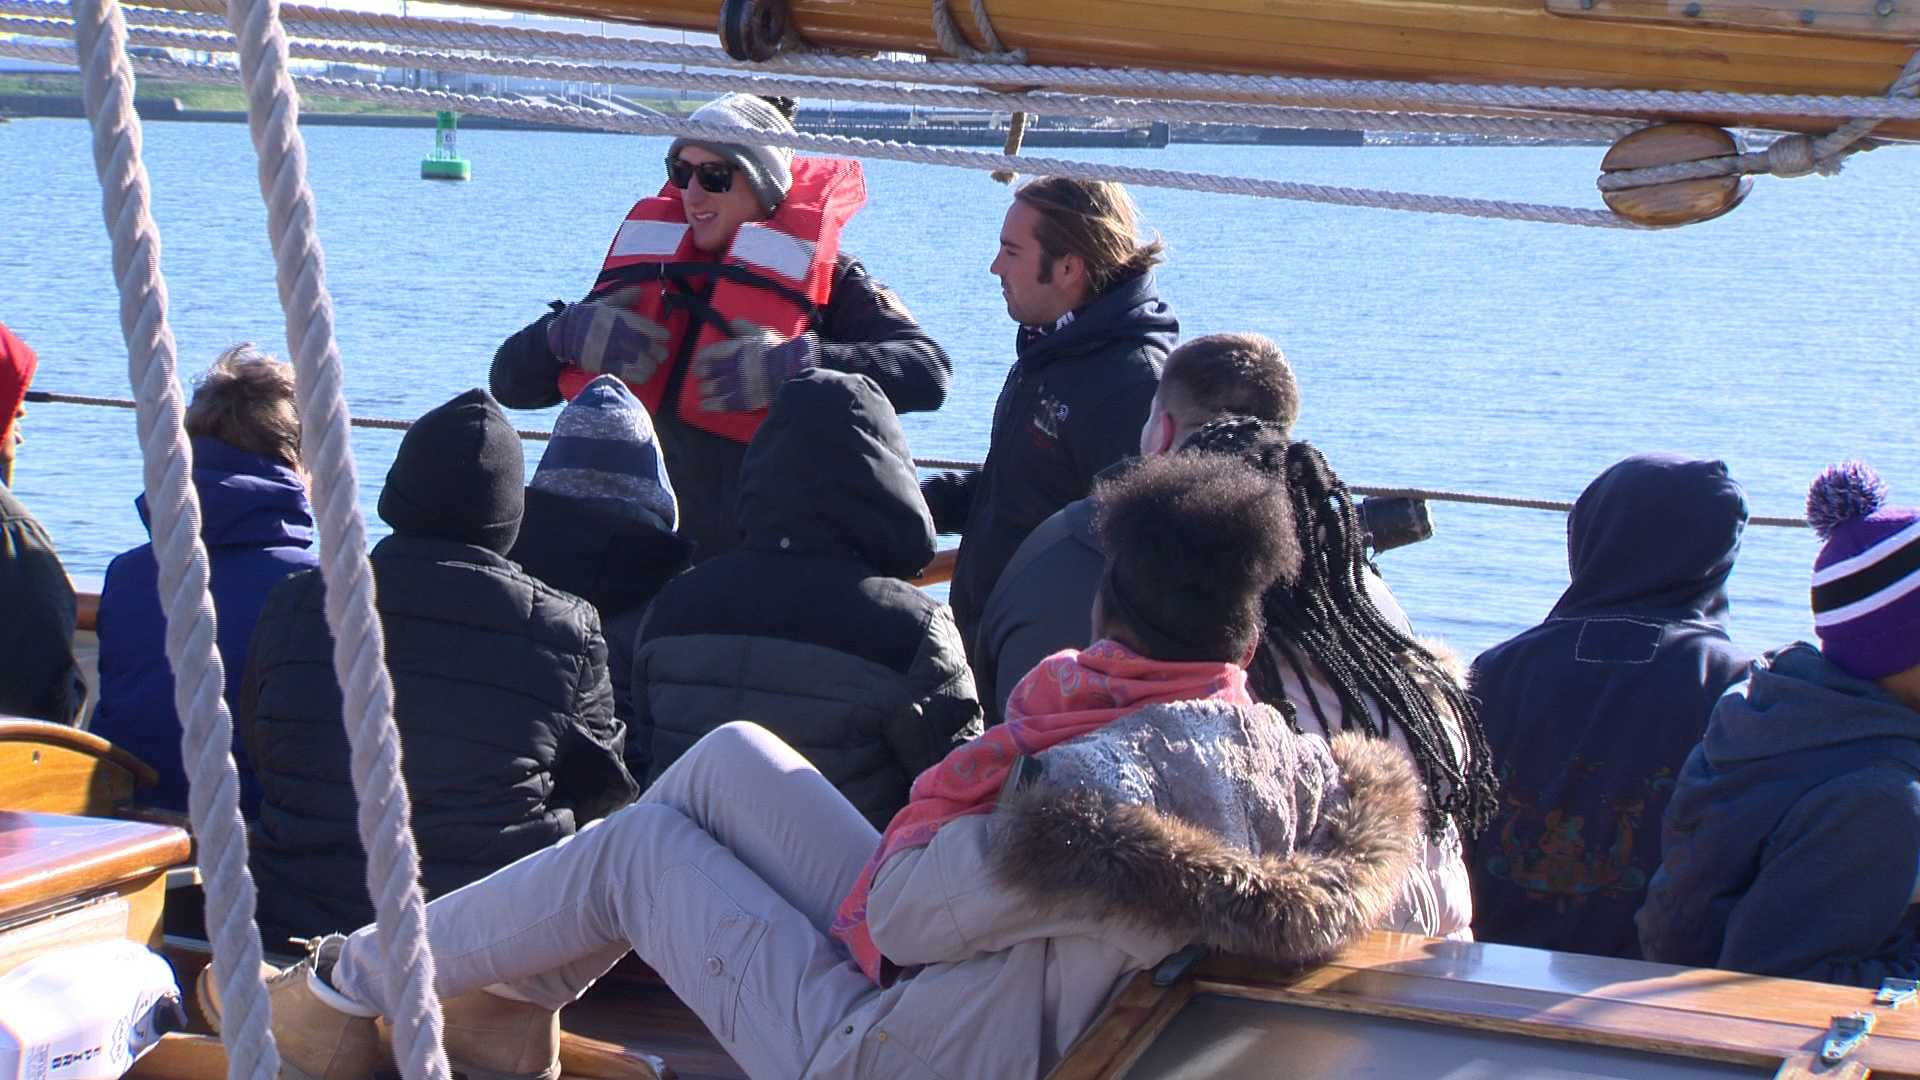 Students listen to their instructor while on the Pride of Baltimore II.